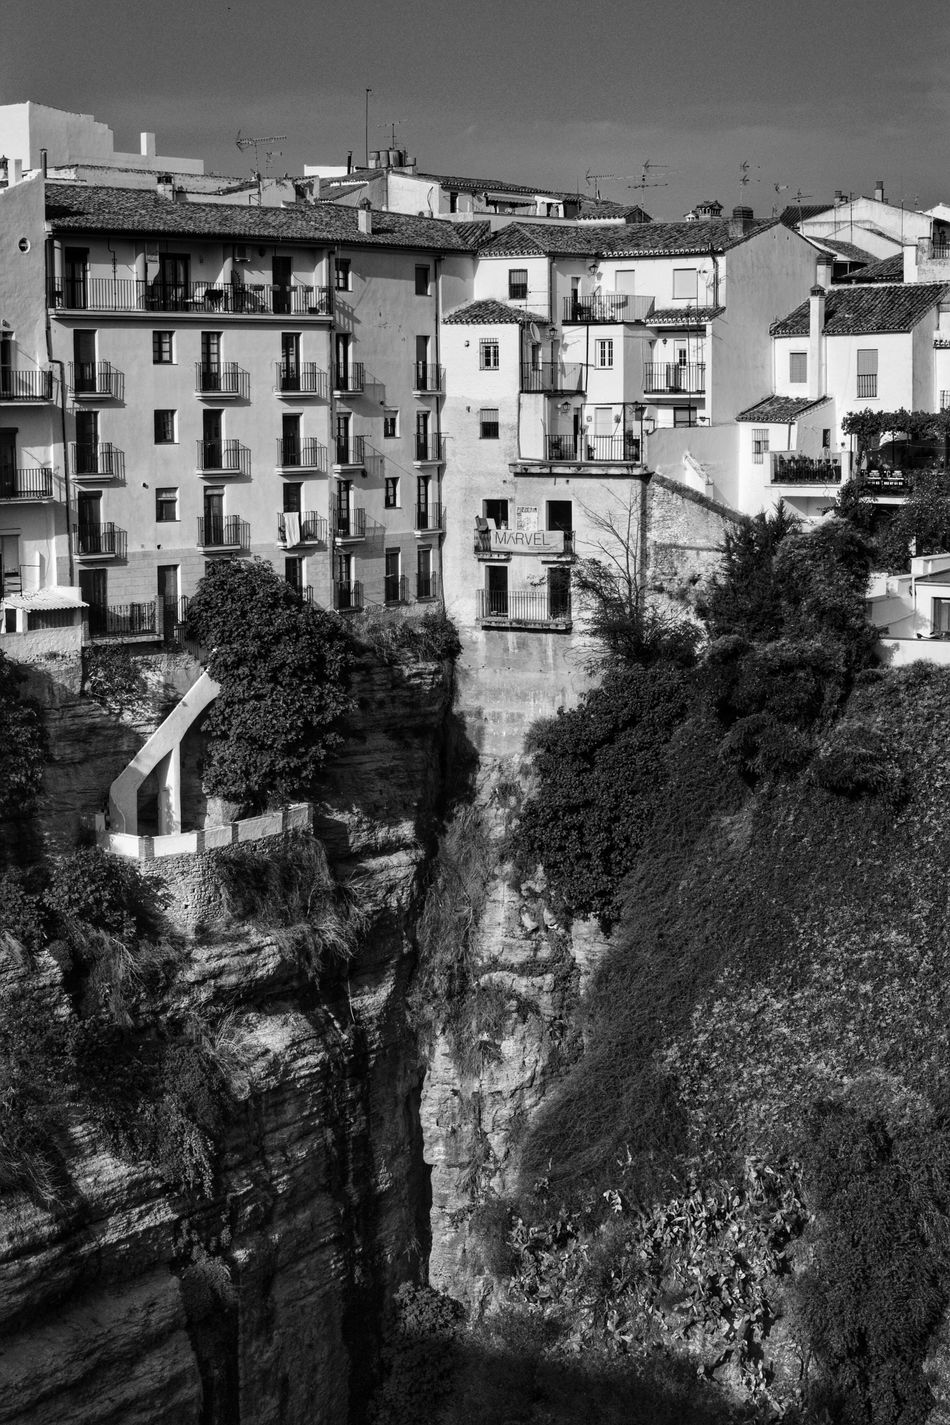 Architecture Built Structure Building Exterior Outdoors Day No People Scenic Landscapes Ronda Ronda Spain Ronda, Malaga Ronda Andalucia Cliff Face Cliff Edge Cliffs Cliffside Cliff View Black And White Black And White Photography Blackandwhite Photography Black & White Black & White Photography Andalucian Town Cliff Near The Edge Clifftop